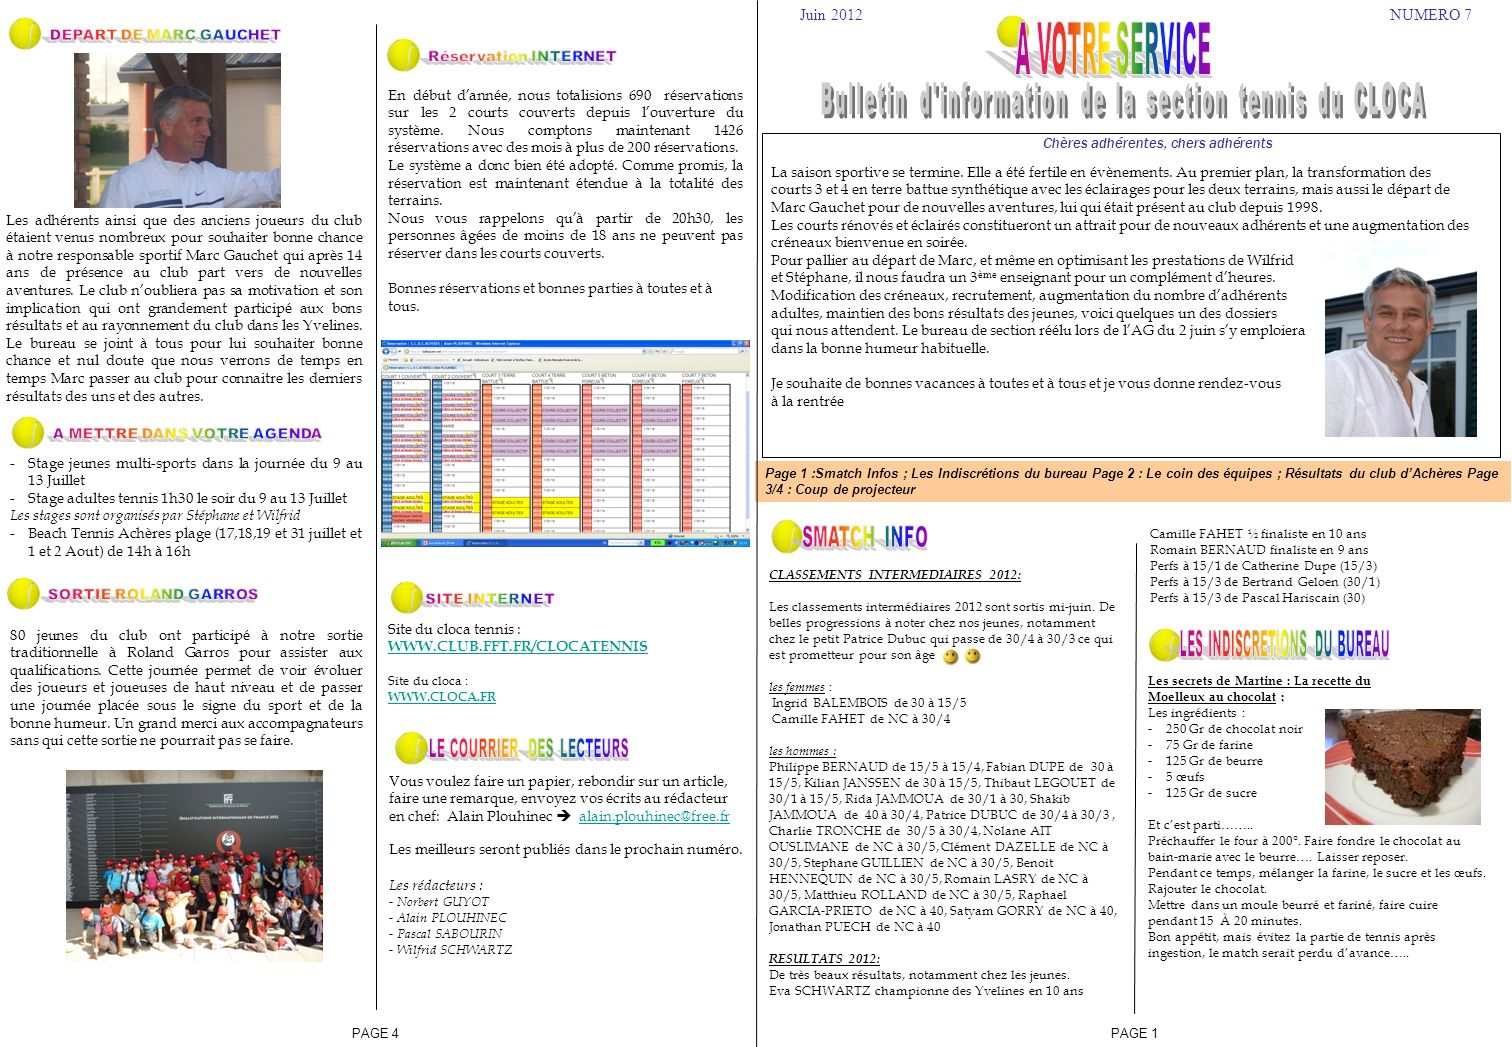 A V TRE SERVICE Bulletin d information de la section tennis du CLOCA